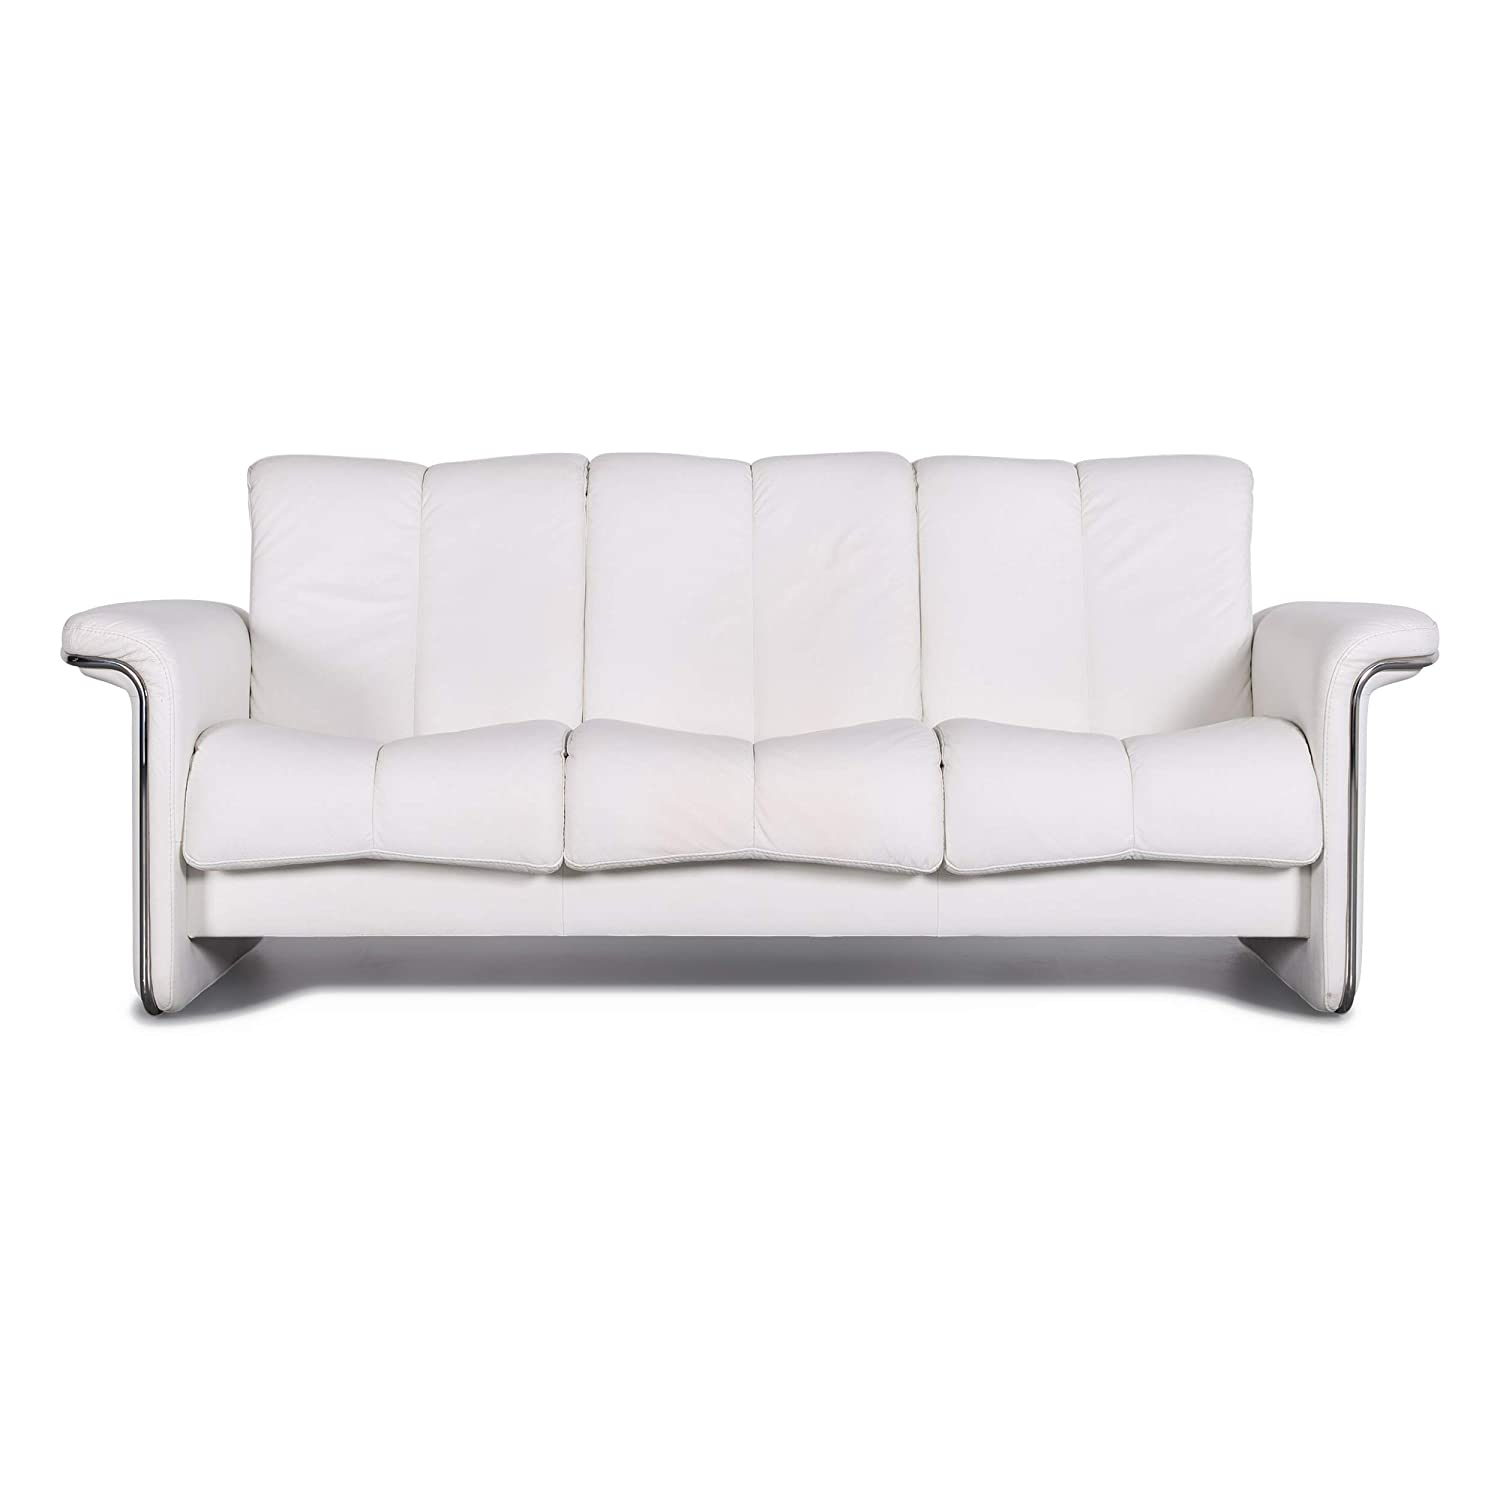 Stressless Blues Designer Leather Sofa White Real Leather ...